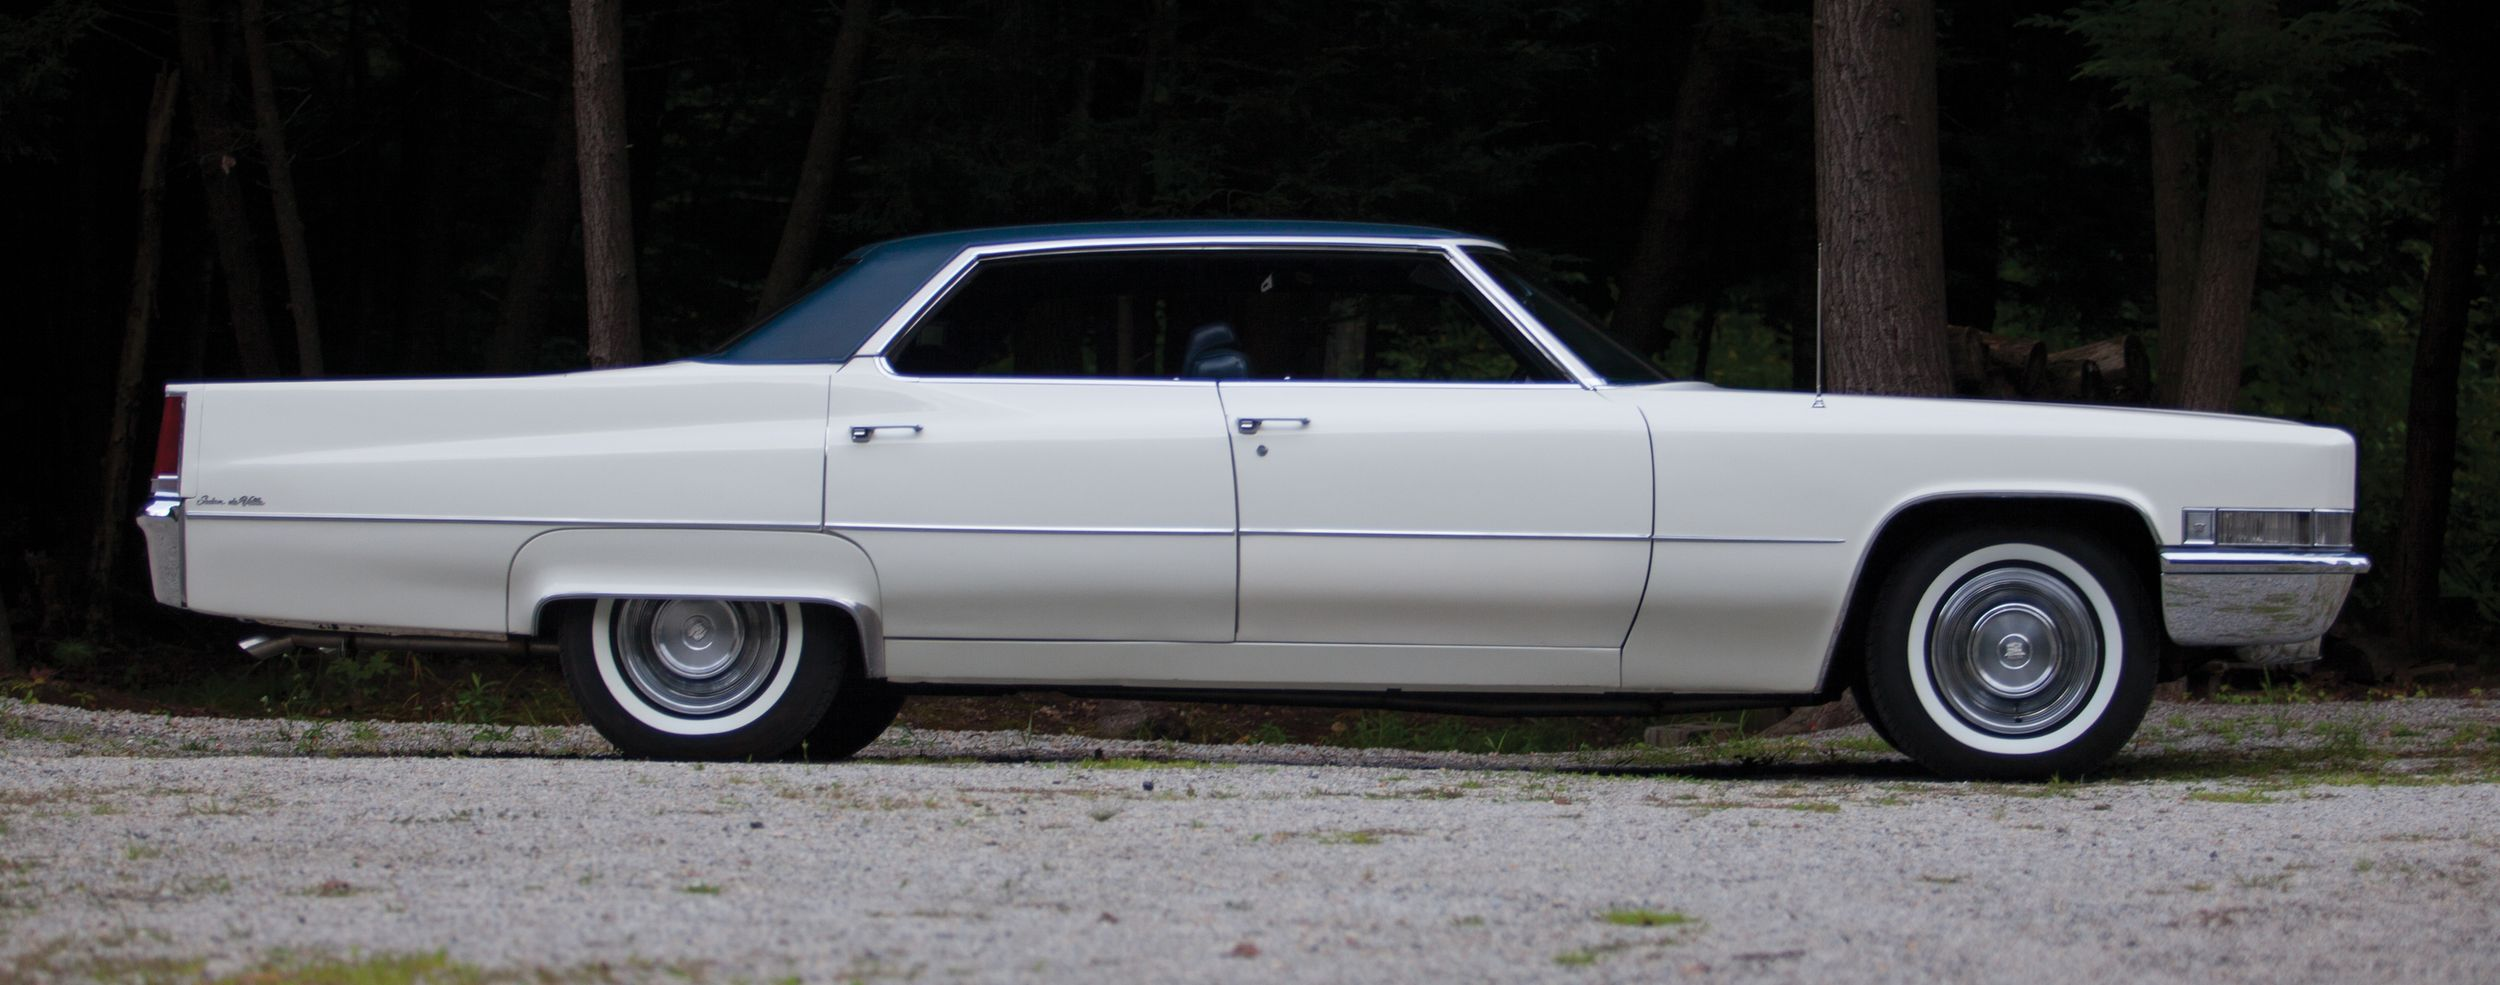 1969 Cadillac Sedan Deville Wheels Wings Waves Pinterest 1978 4 Door